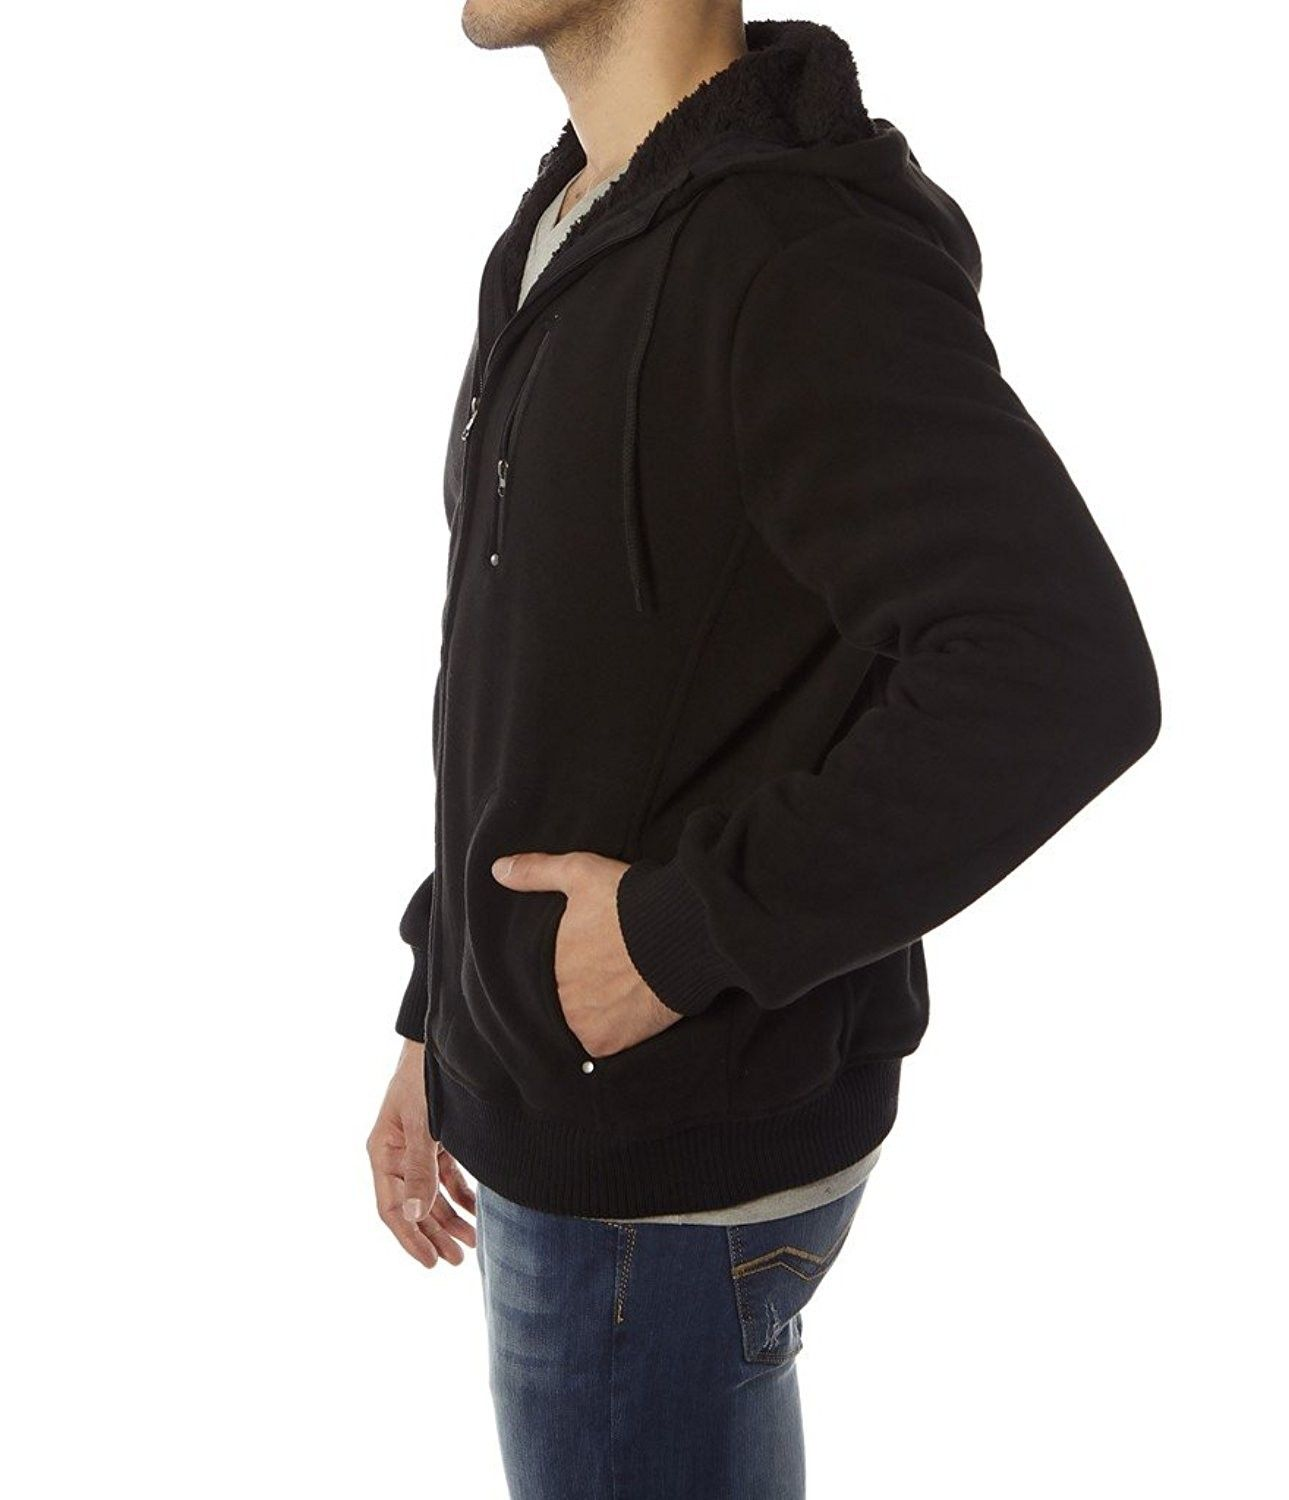 Mens//Women Fur Lined Sherpa Hoodie Hooded Top// Winter Warmer M XXL